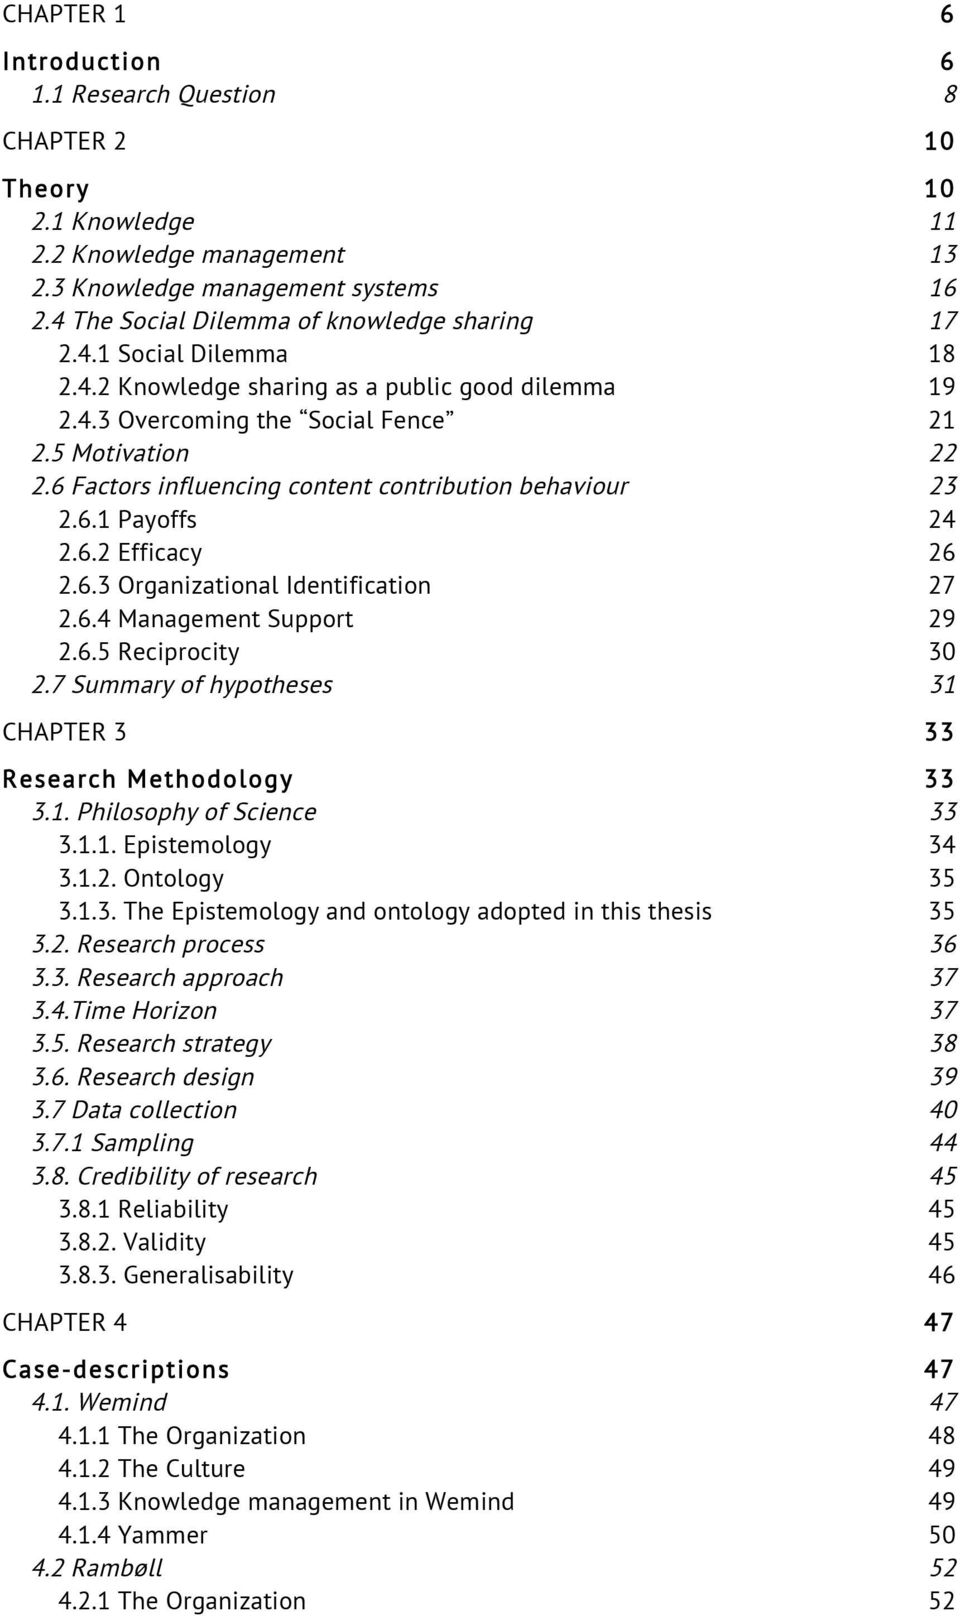 2.6.2 Efficacy 26! 2.6.3 Organizational Identification 27! 2.6.4 Management Support 29! 2.6.5 Reciprocity 30! 2.7 Summary of hypotheses 31! CHAPTER 3 33! Research Methodology 33! 3.1. Philosophy of Science 33!